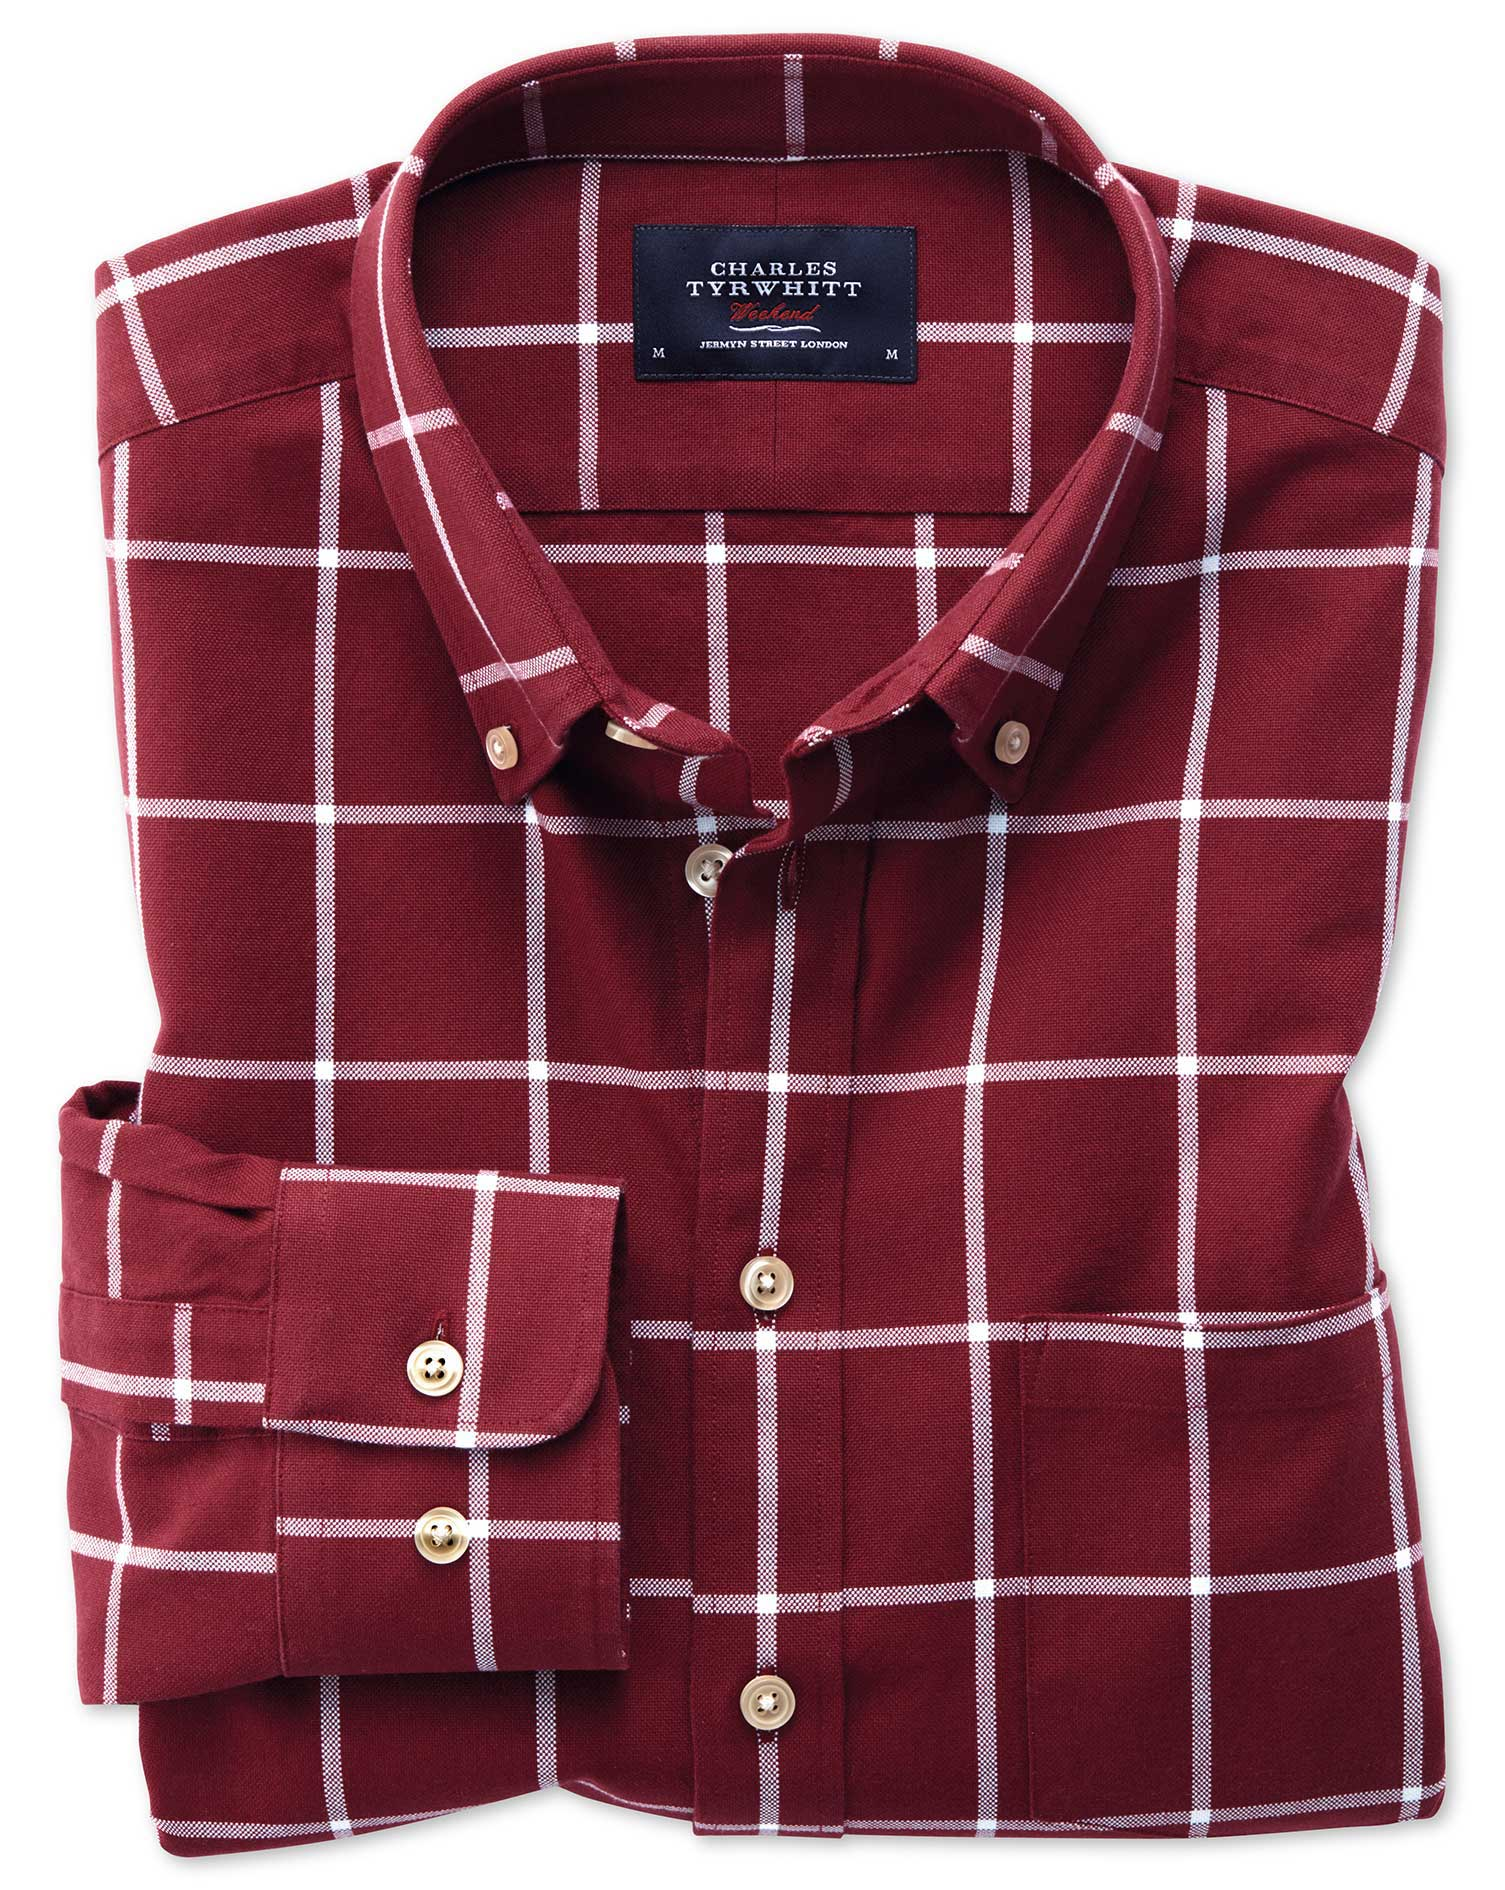 Extra Slim Fit Button-Down Washed Oxford Burgundy and White Check Cotton Shirt Single Cuff Size XS b